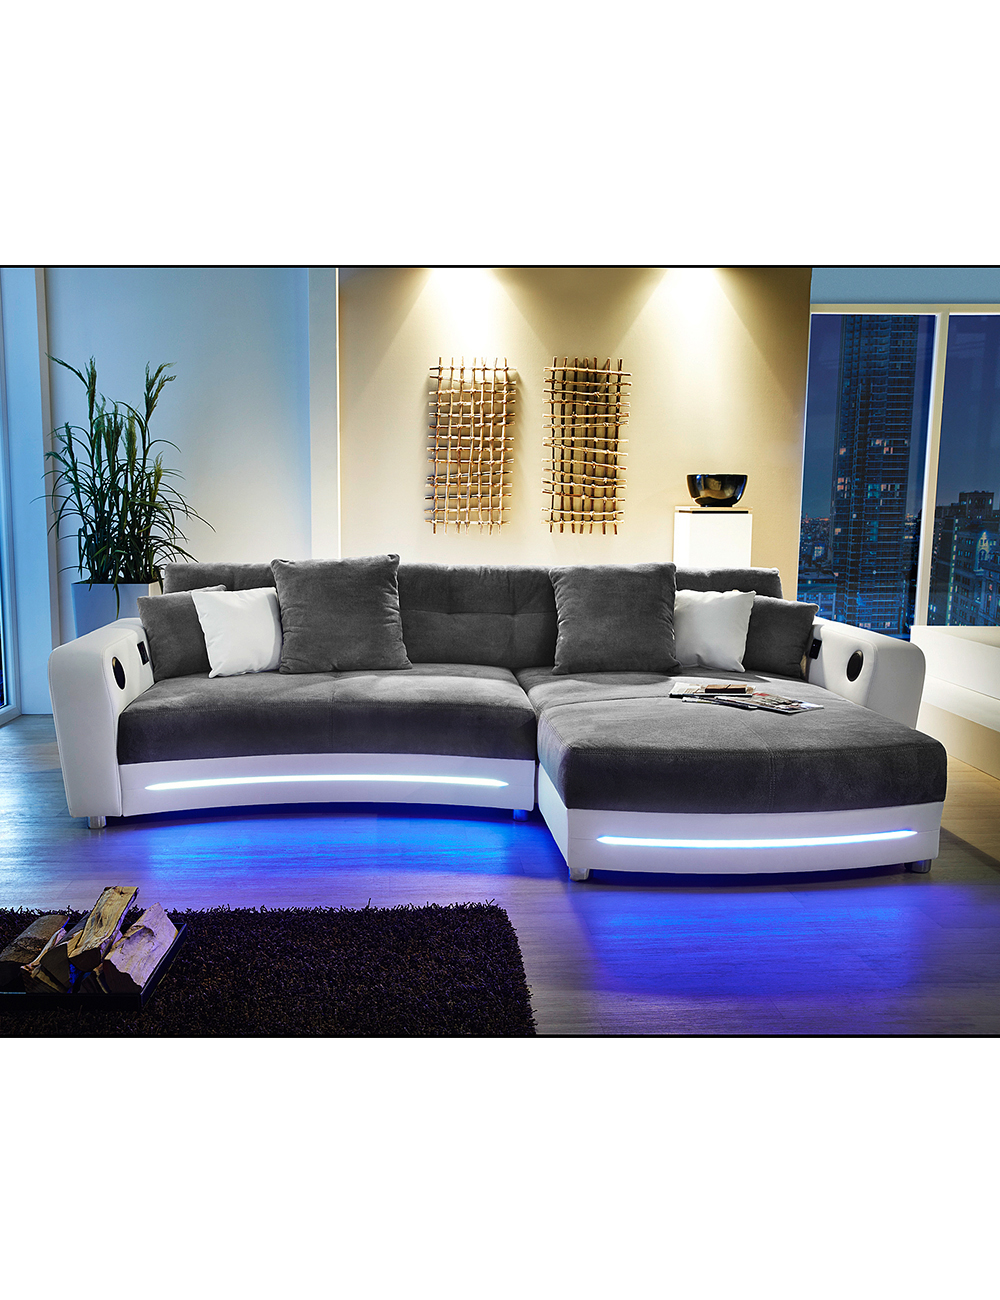 ecksofa party weiss grau mit beleuchtungsleiste und. Black Bedroom Furniture Sets. Home Design Ideas